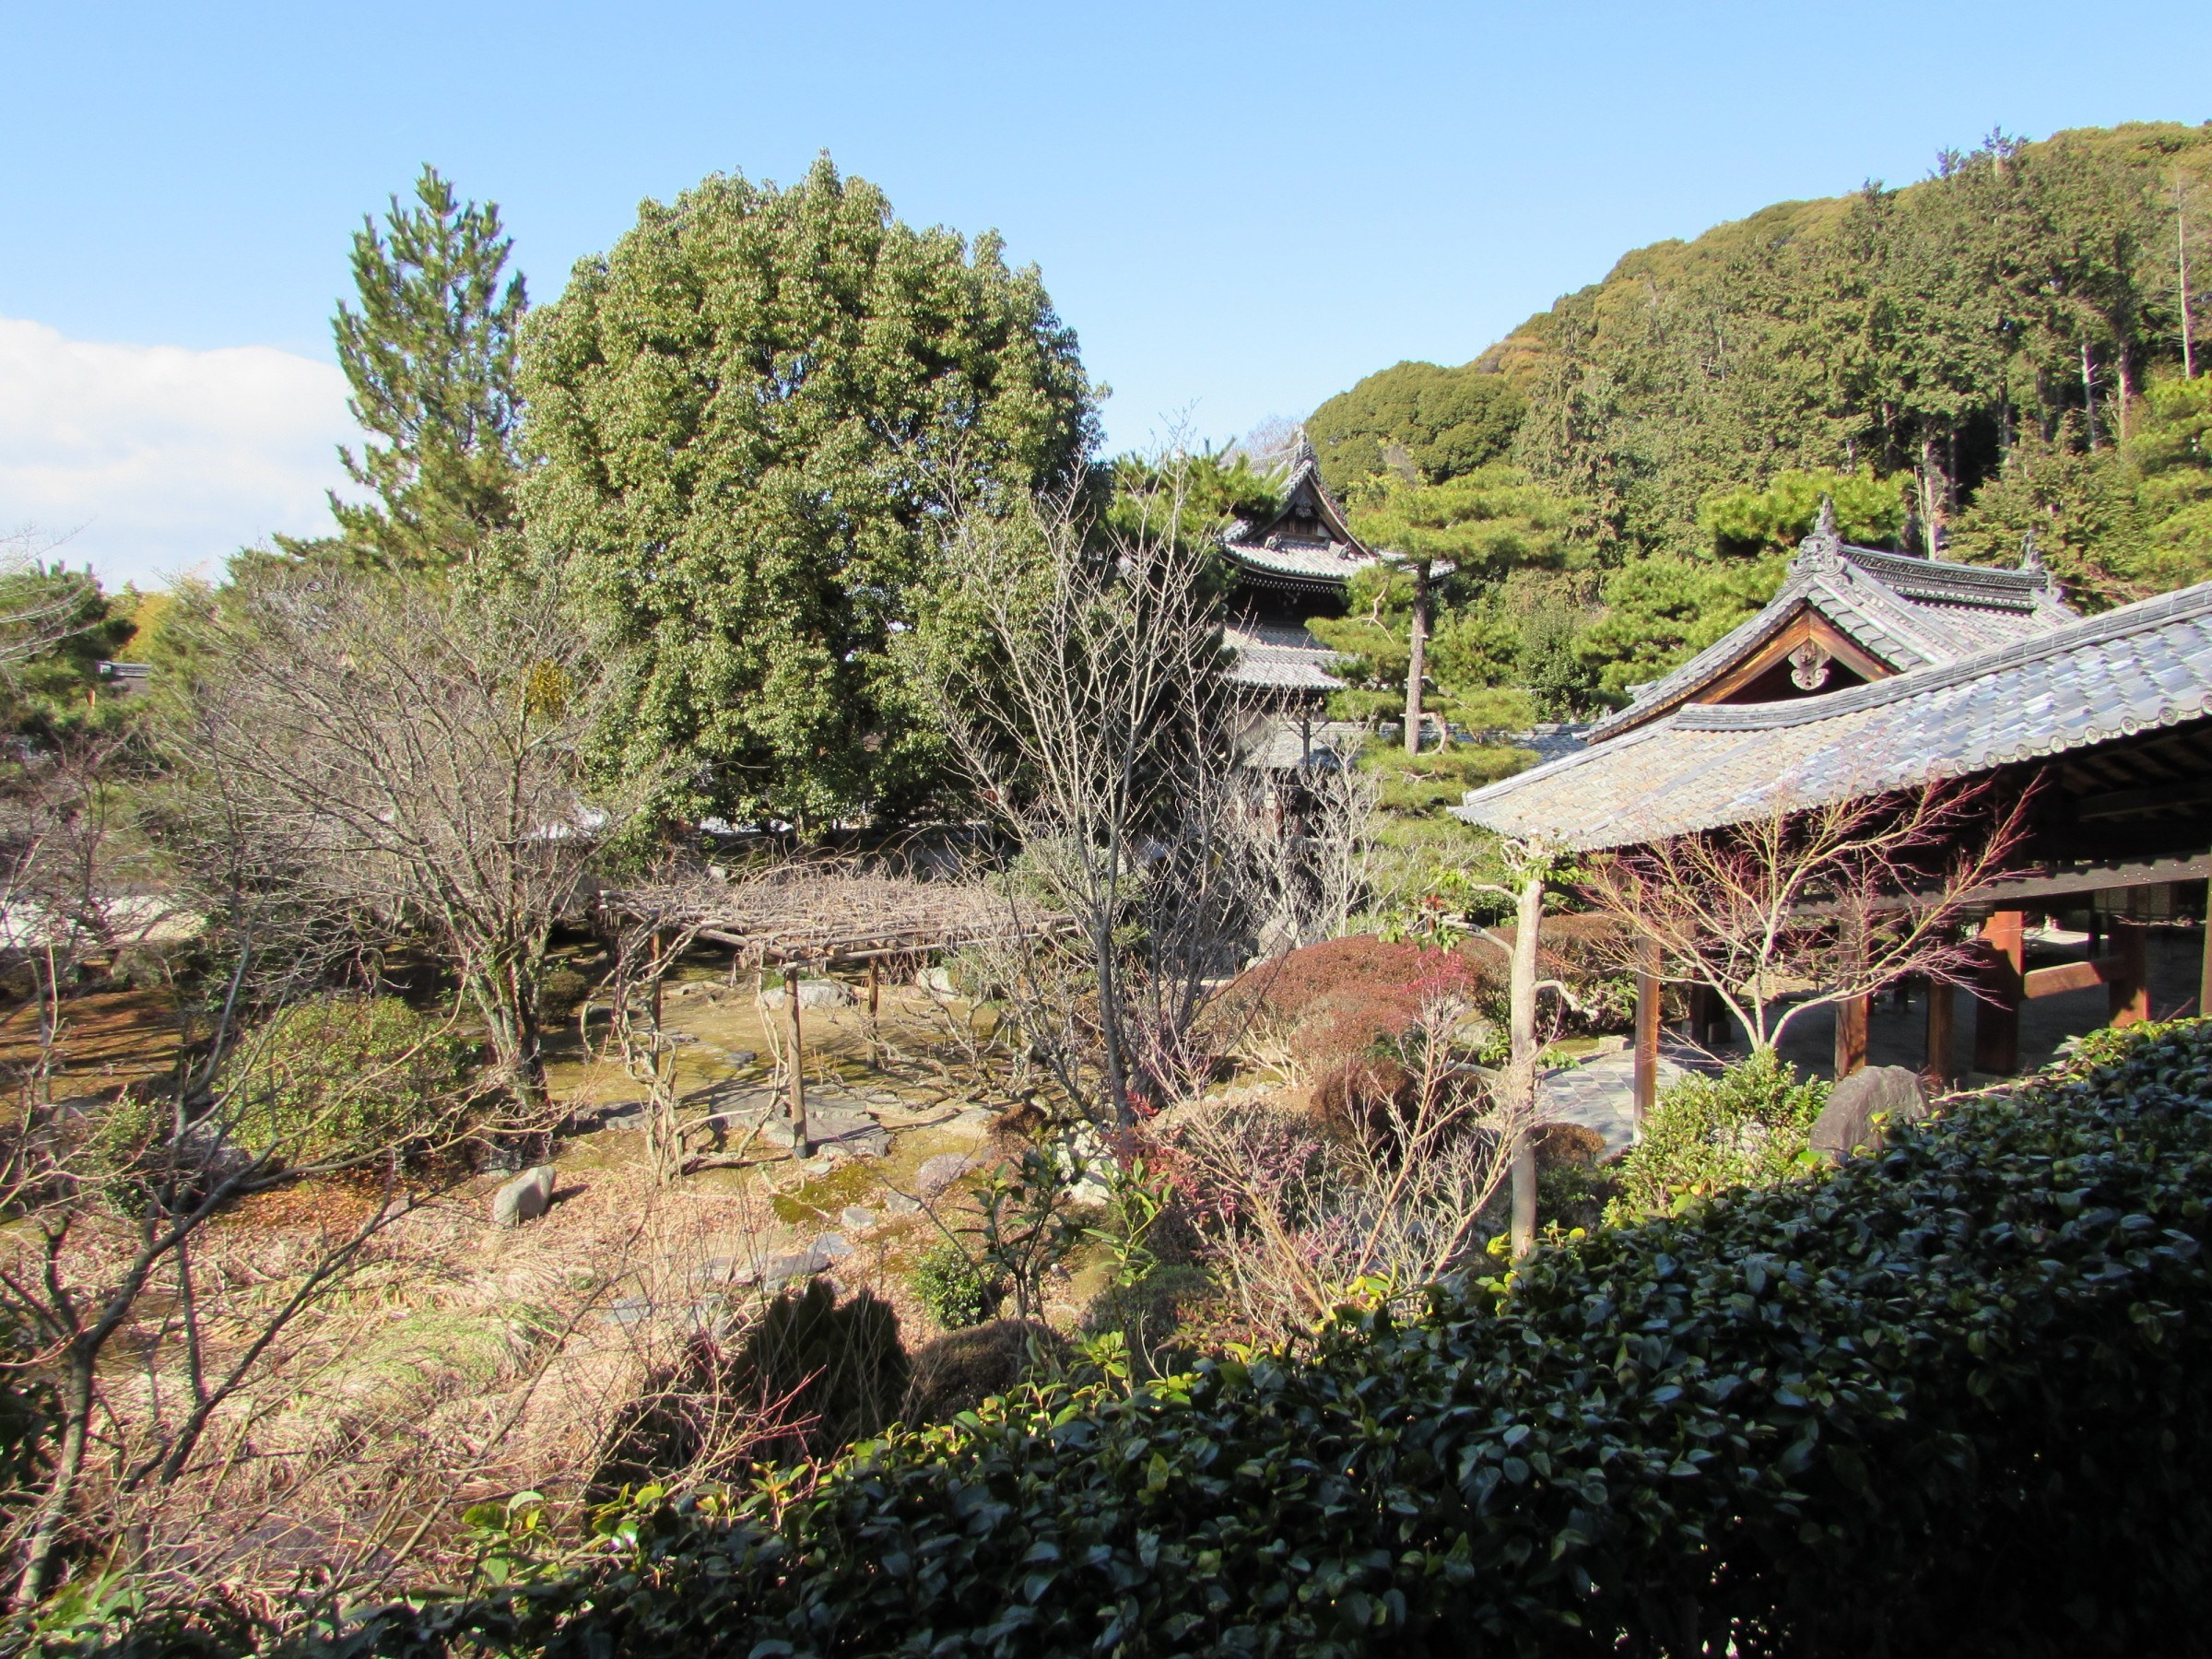 All in all, Mampuku-ji is highly worth a visit. The grounds are large and extensive, and the borrowed scenery is beautiful. Another huge bonus is that compared to the large crowds that are drawn to the major temples in central Kyoto, you're likely to have this wonderful site almost to yourself!